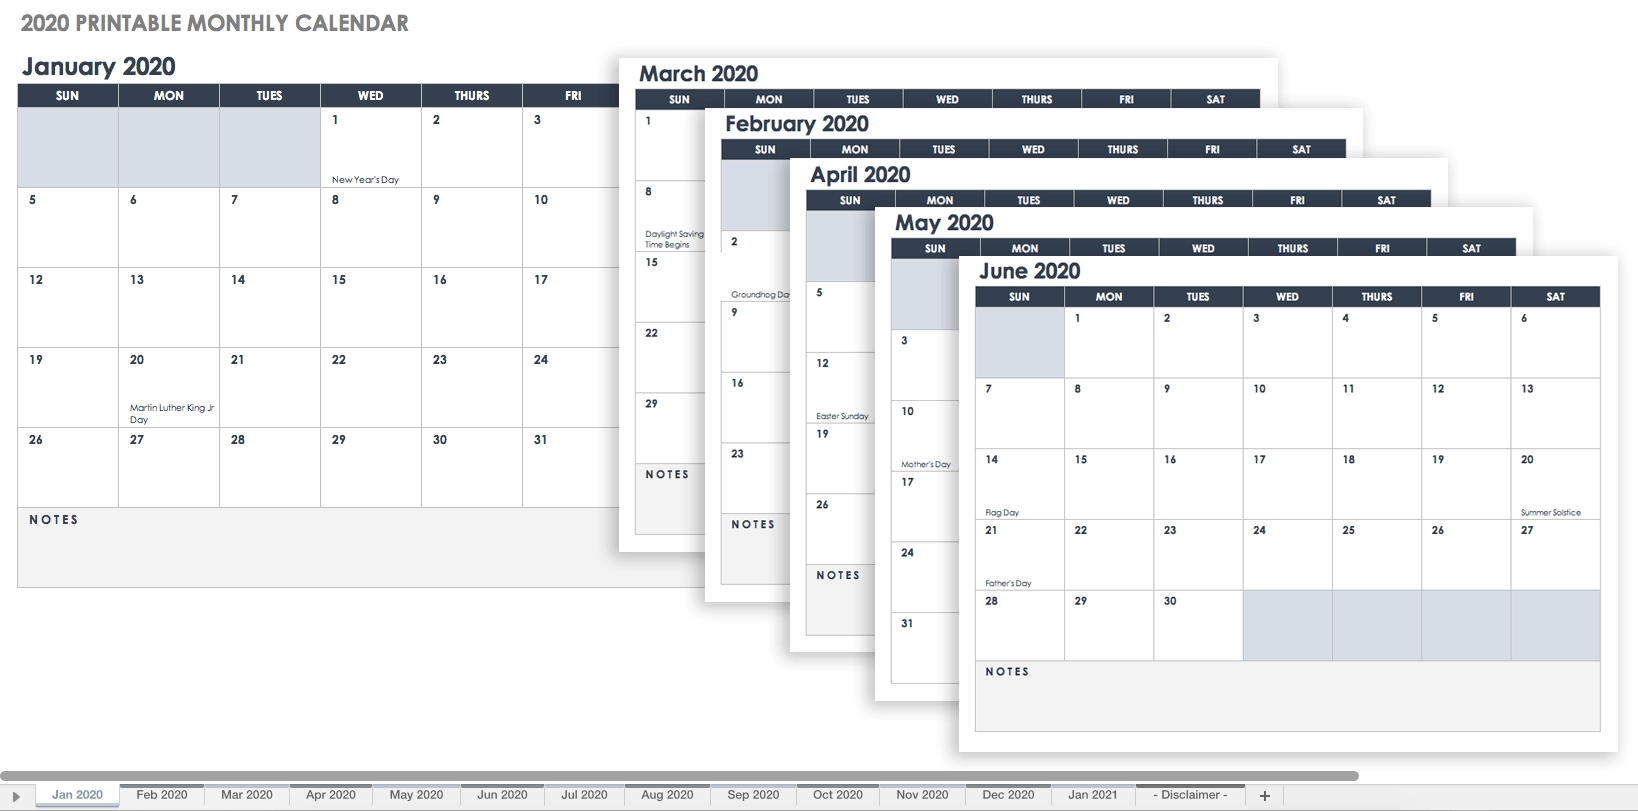 Free Blank Calendar Templates - Smartsheet with regard to Fill In The Date Calendar Printable